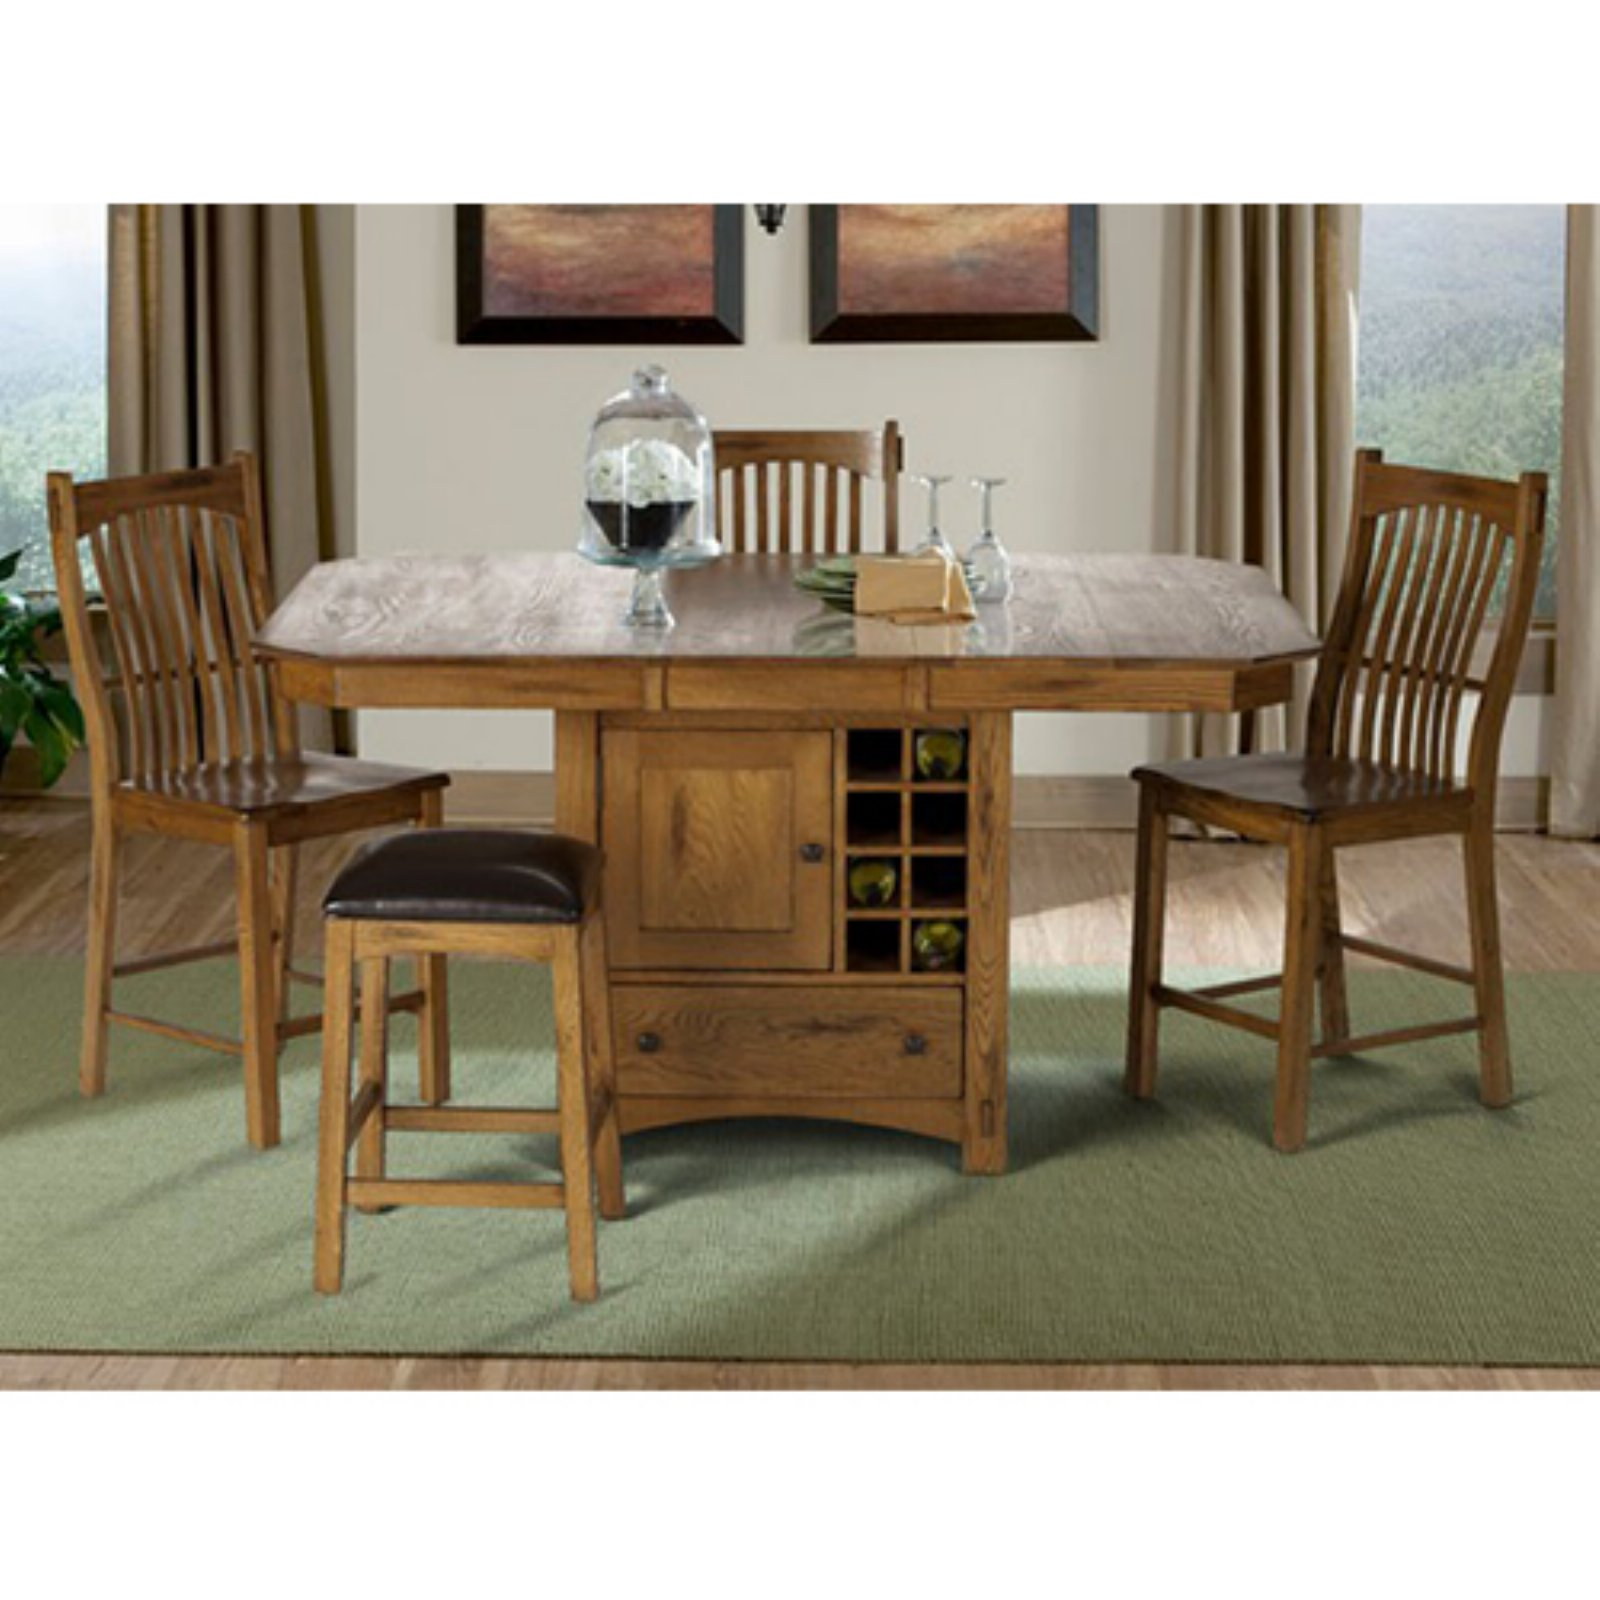 A America Laurelhurst Wine Storage Counter Height Dining Table   Rustic Oak